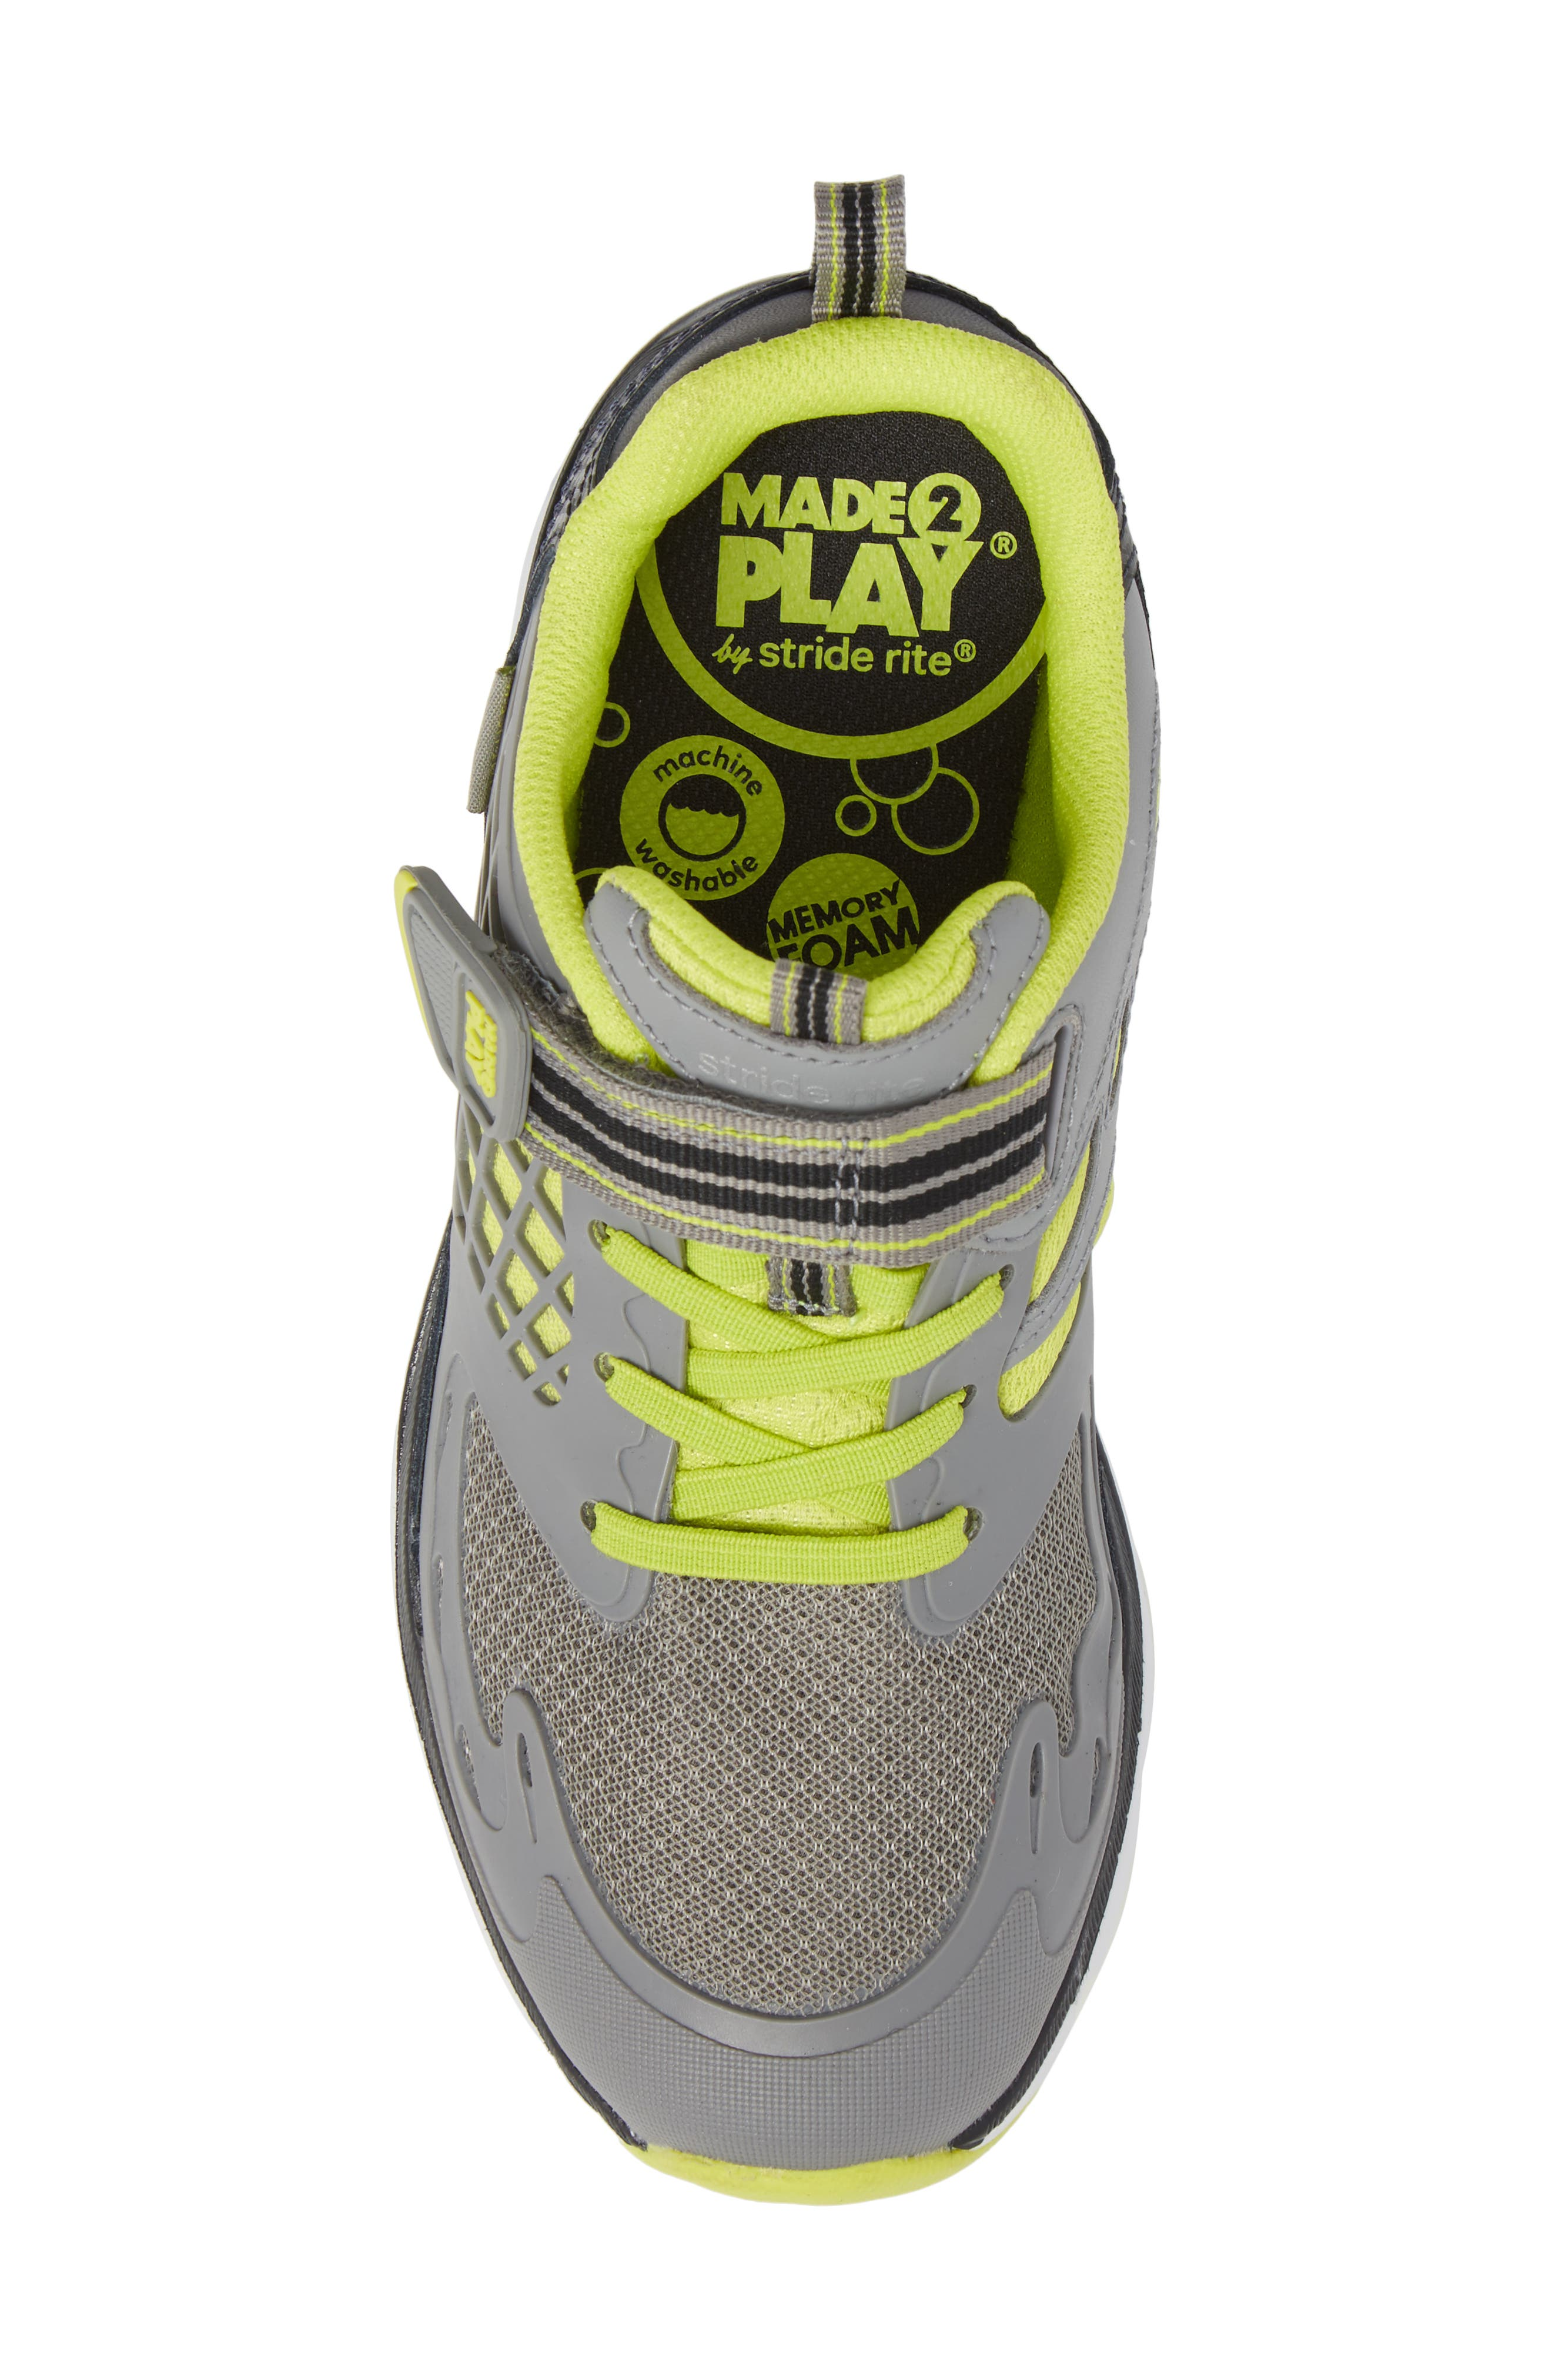 Made 2 Play Breccen Sneaker,                             Alternate thumbnail 5, color,                             Grey/ Lime Leather/ Textile